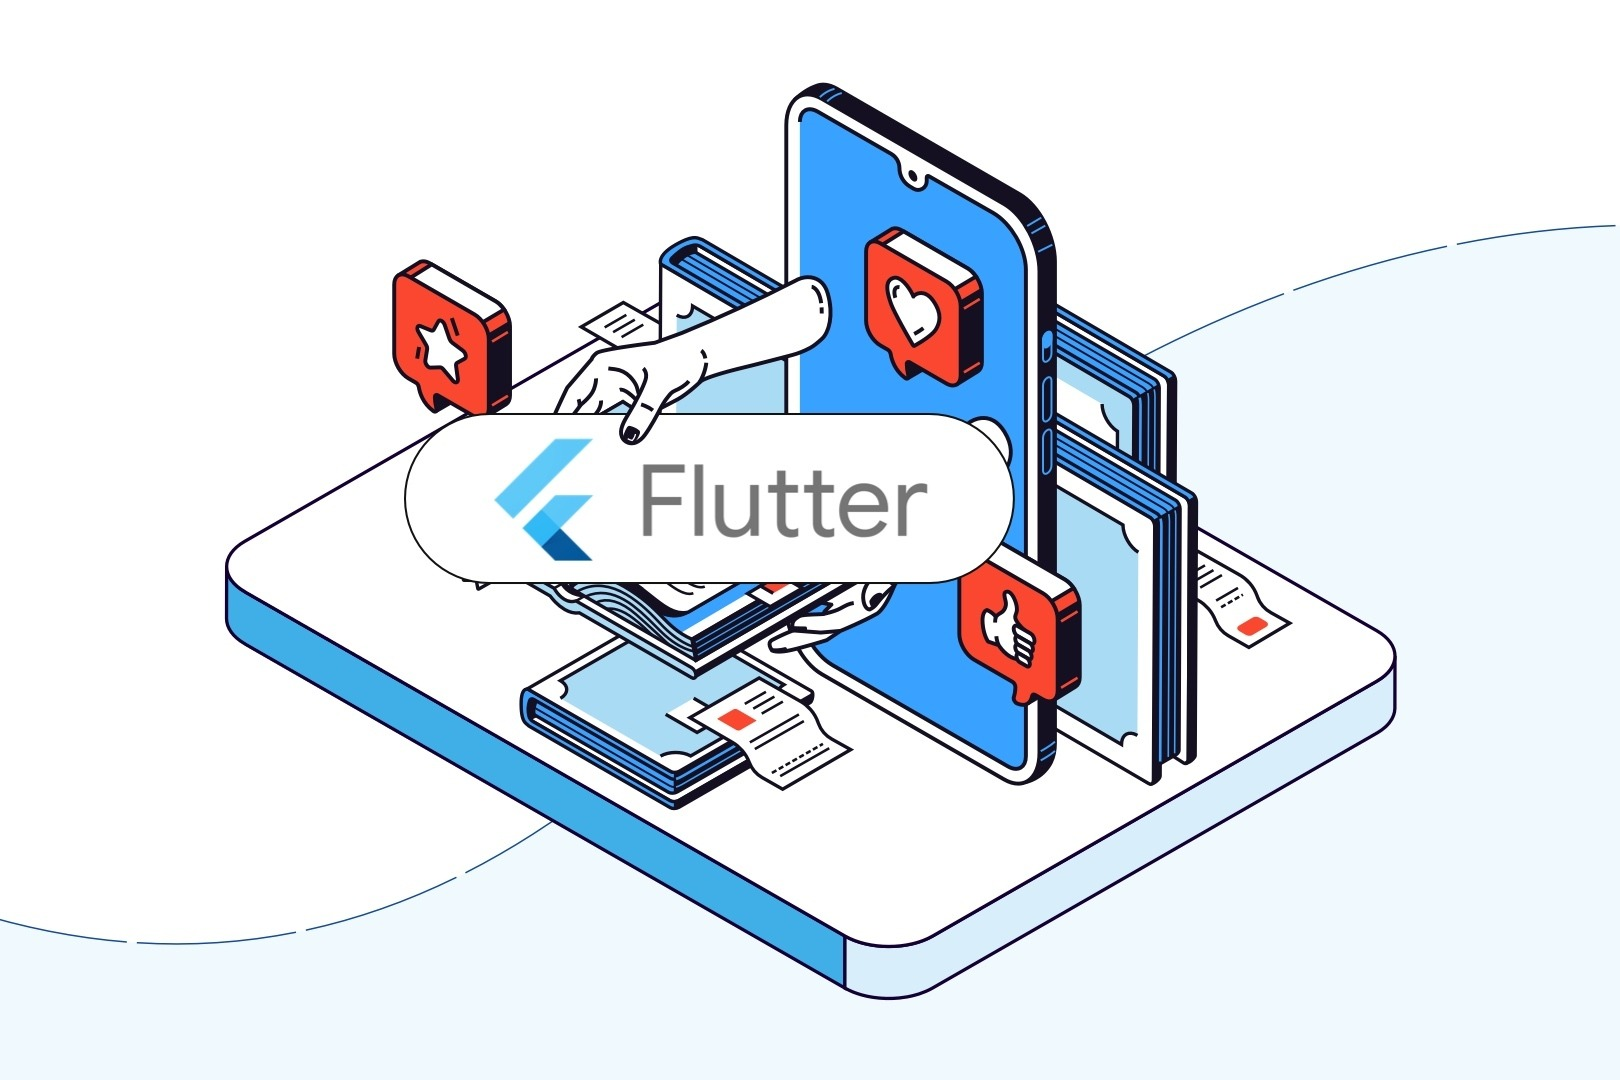 Flutter resources: how can you learn Flutter yourself?